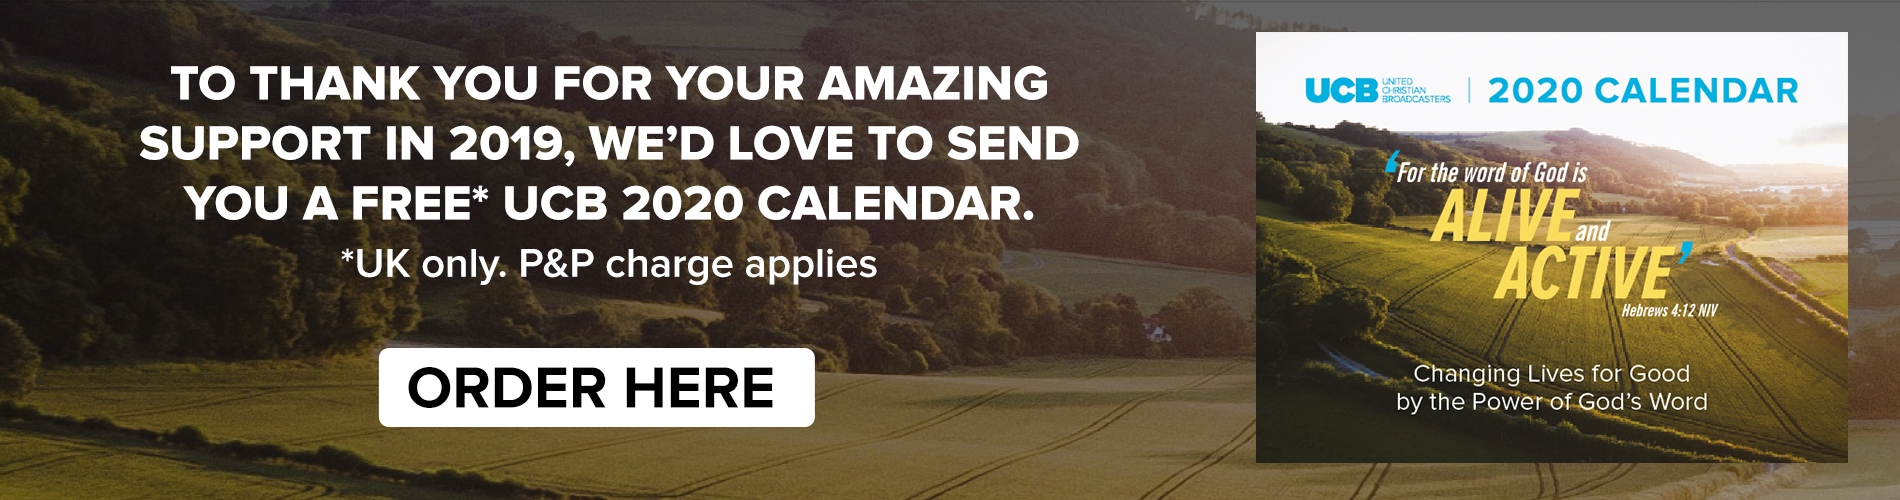 To thank you for your amazing support in 2019, we'd love to send you a free* UCB 2020 Calendar.